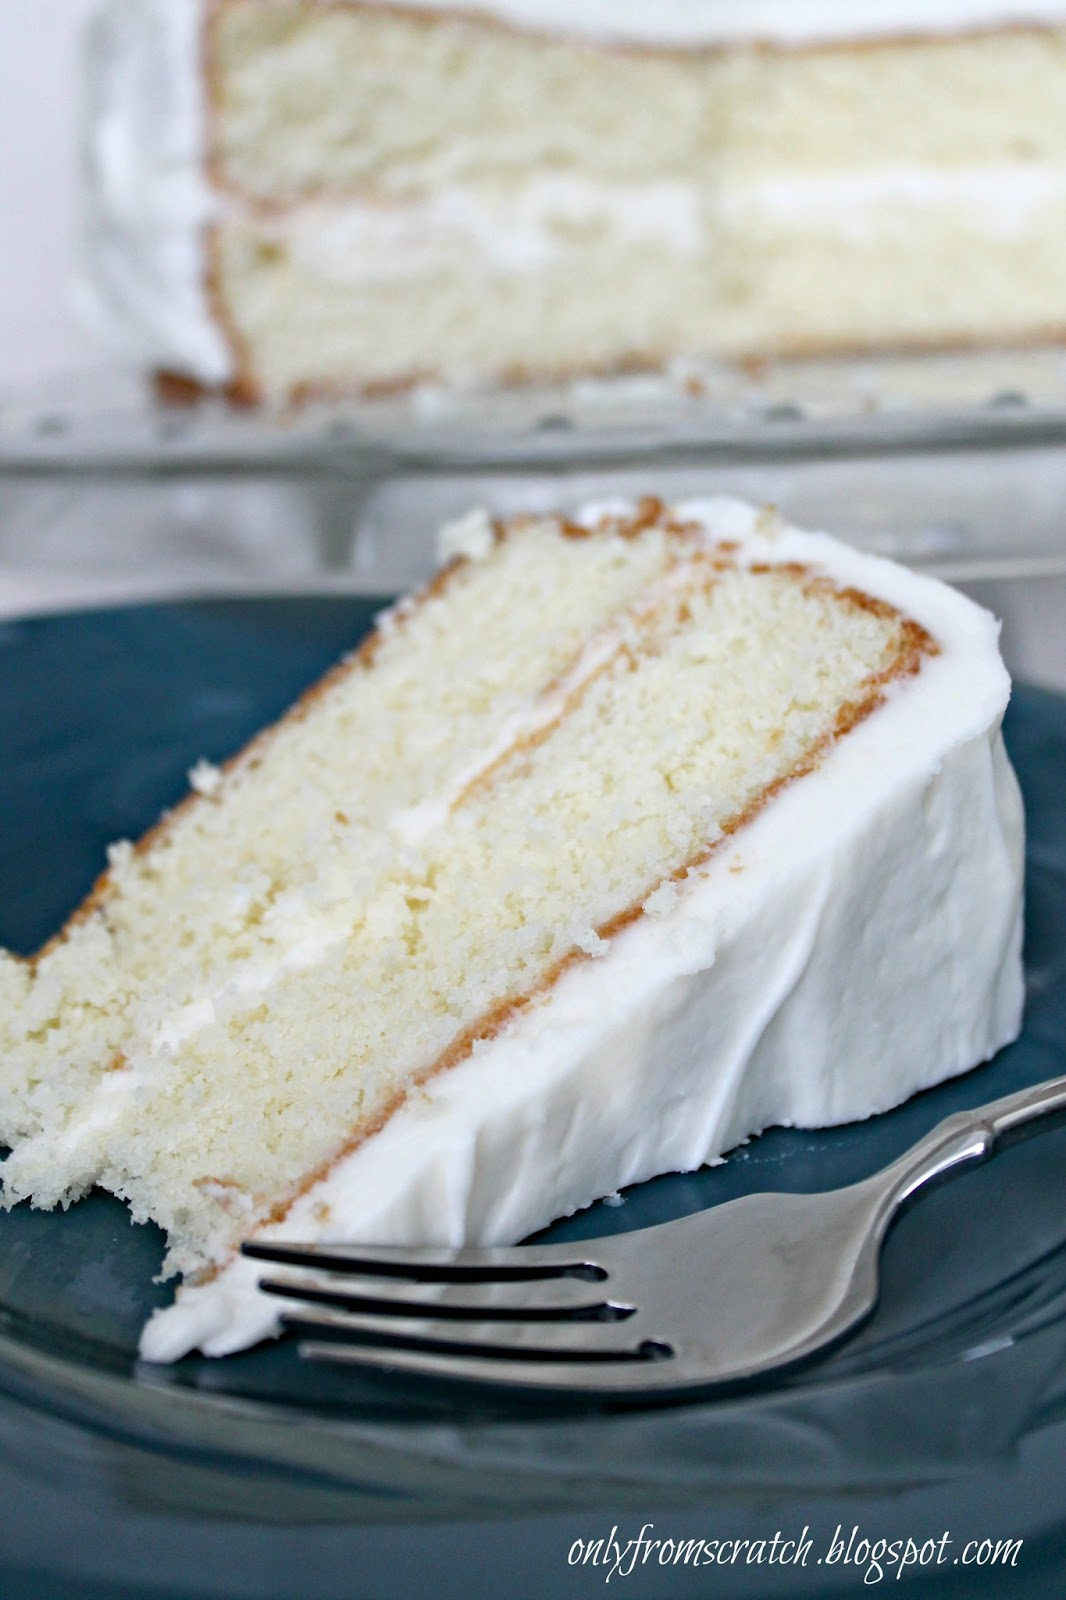 Only From Scratch Simple Layer Cake with Vanilla Frosting from